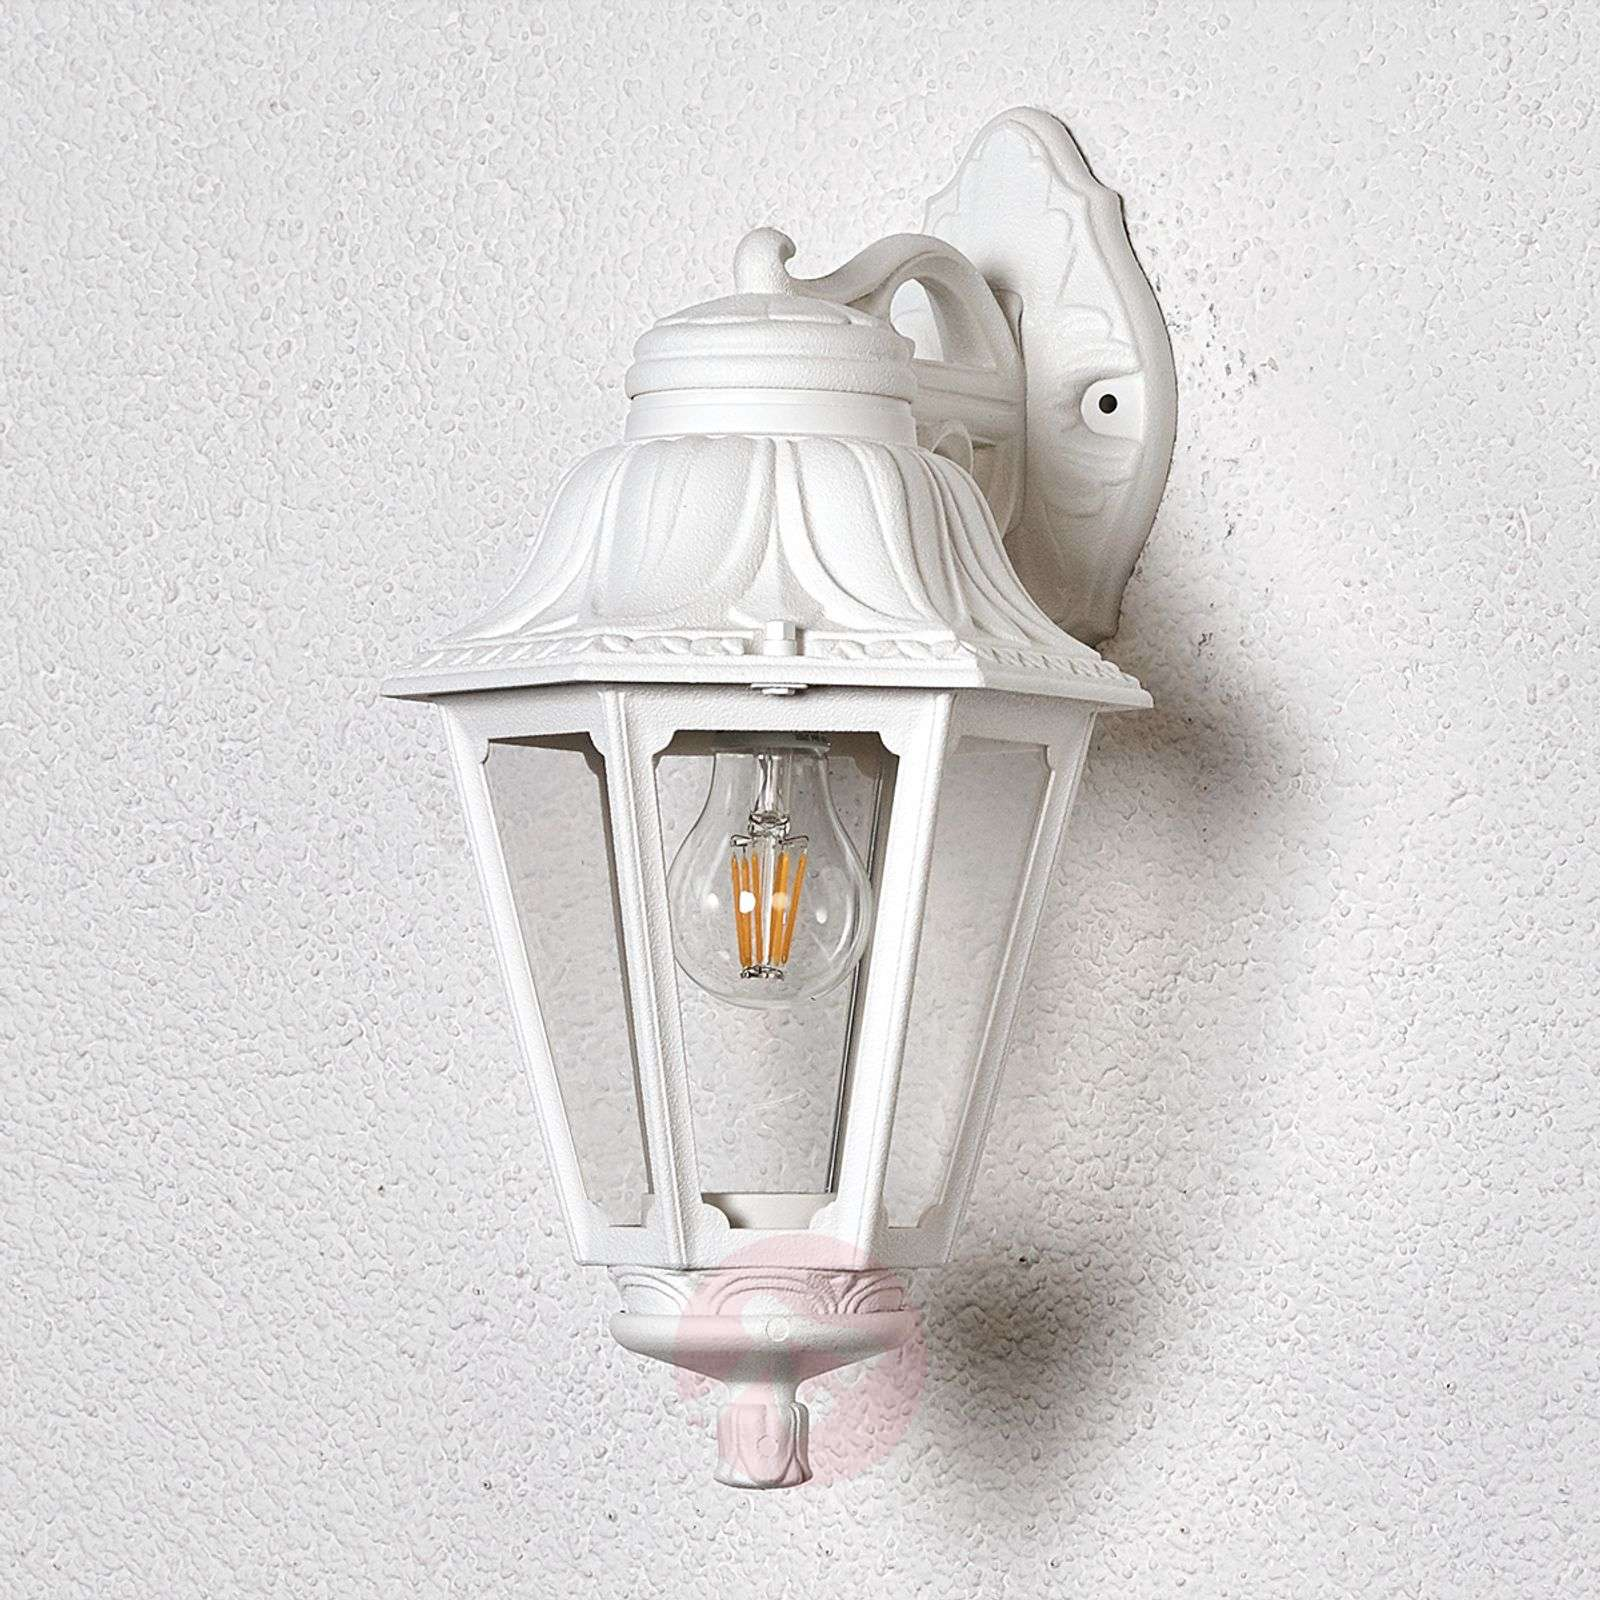 LED outdoor wall lamp Bisso Anna white downwards-3538048-01